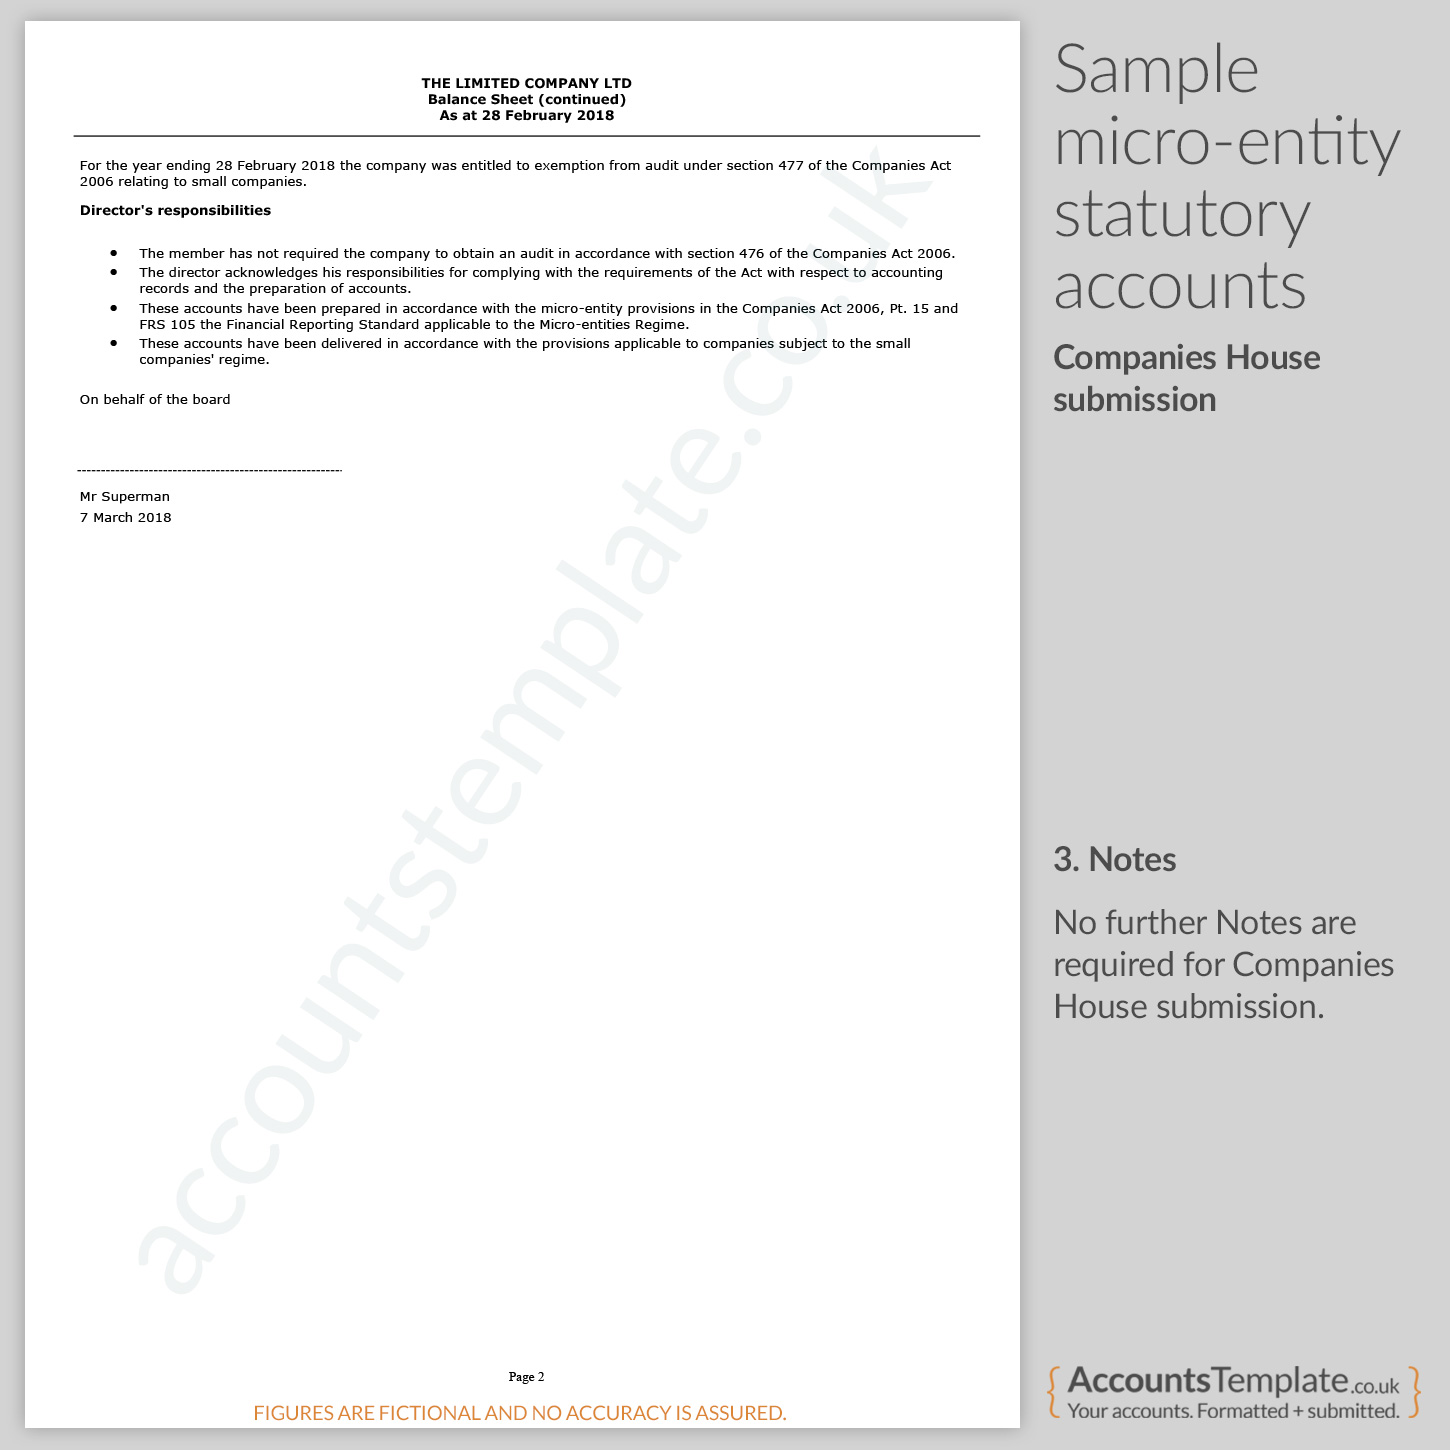 A guide to Micro-Entity statutory accounts format | Accounts Template